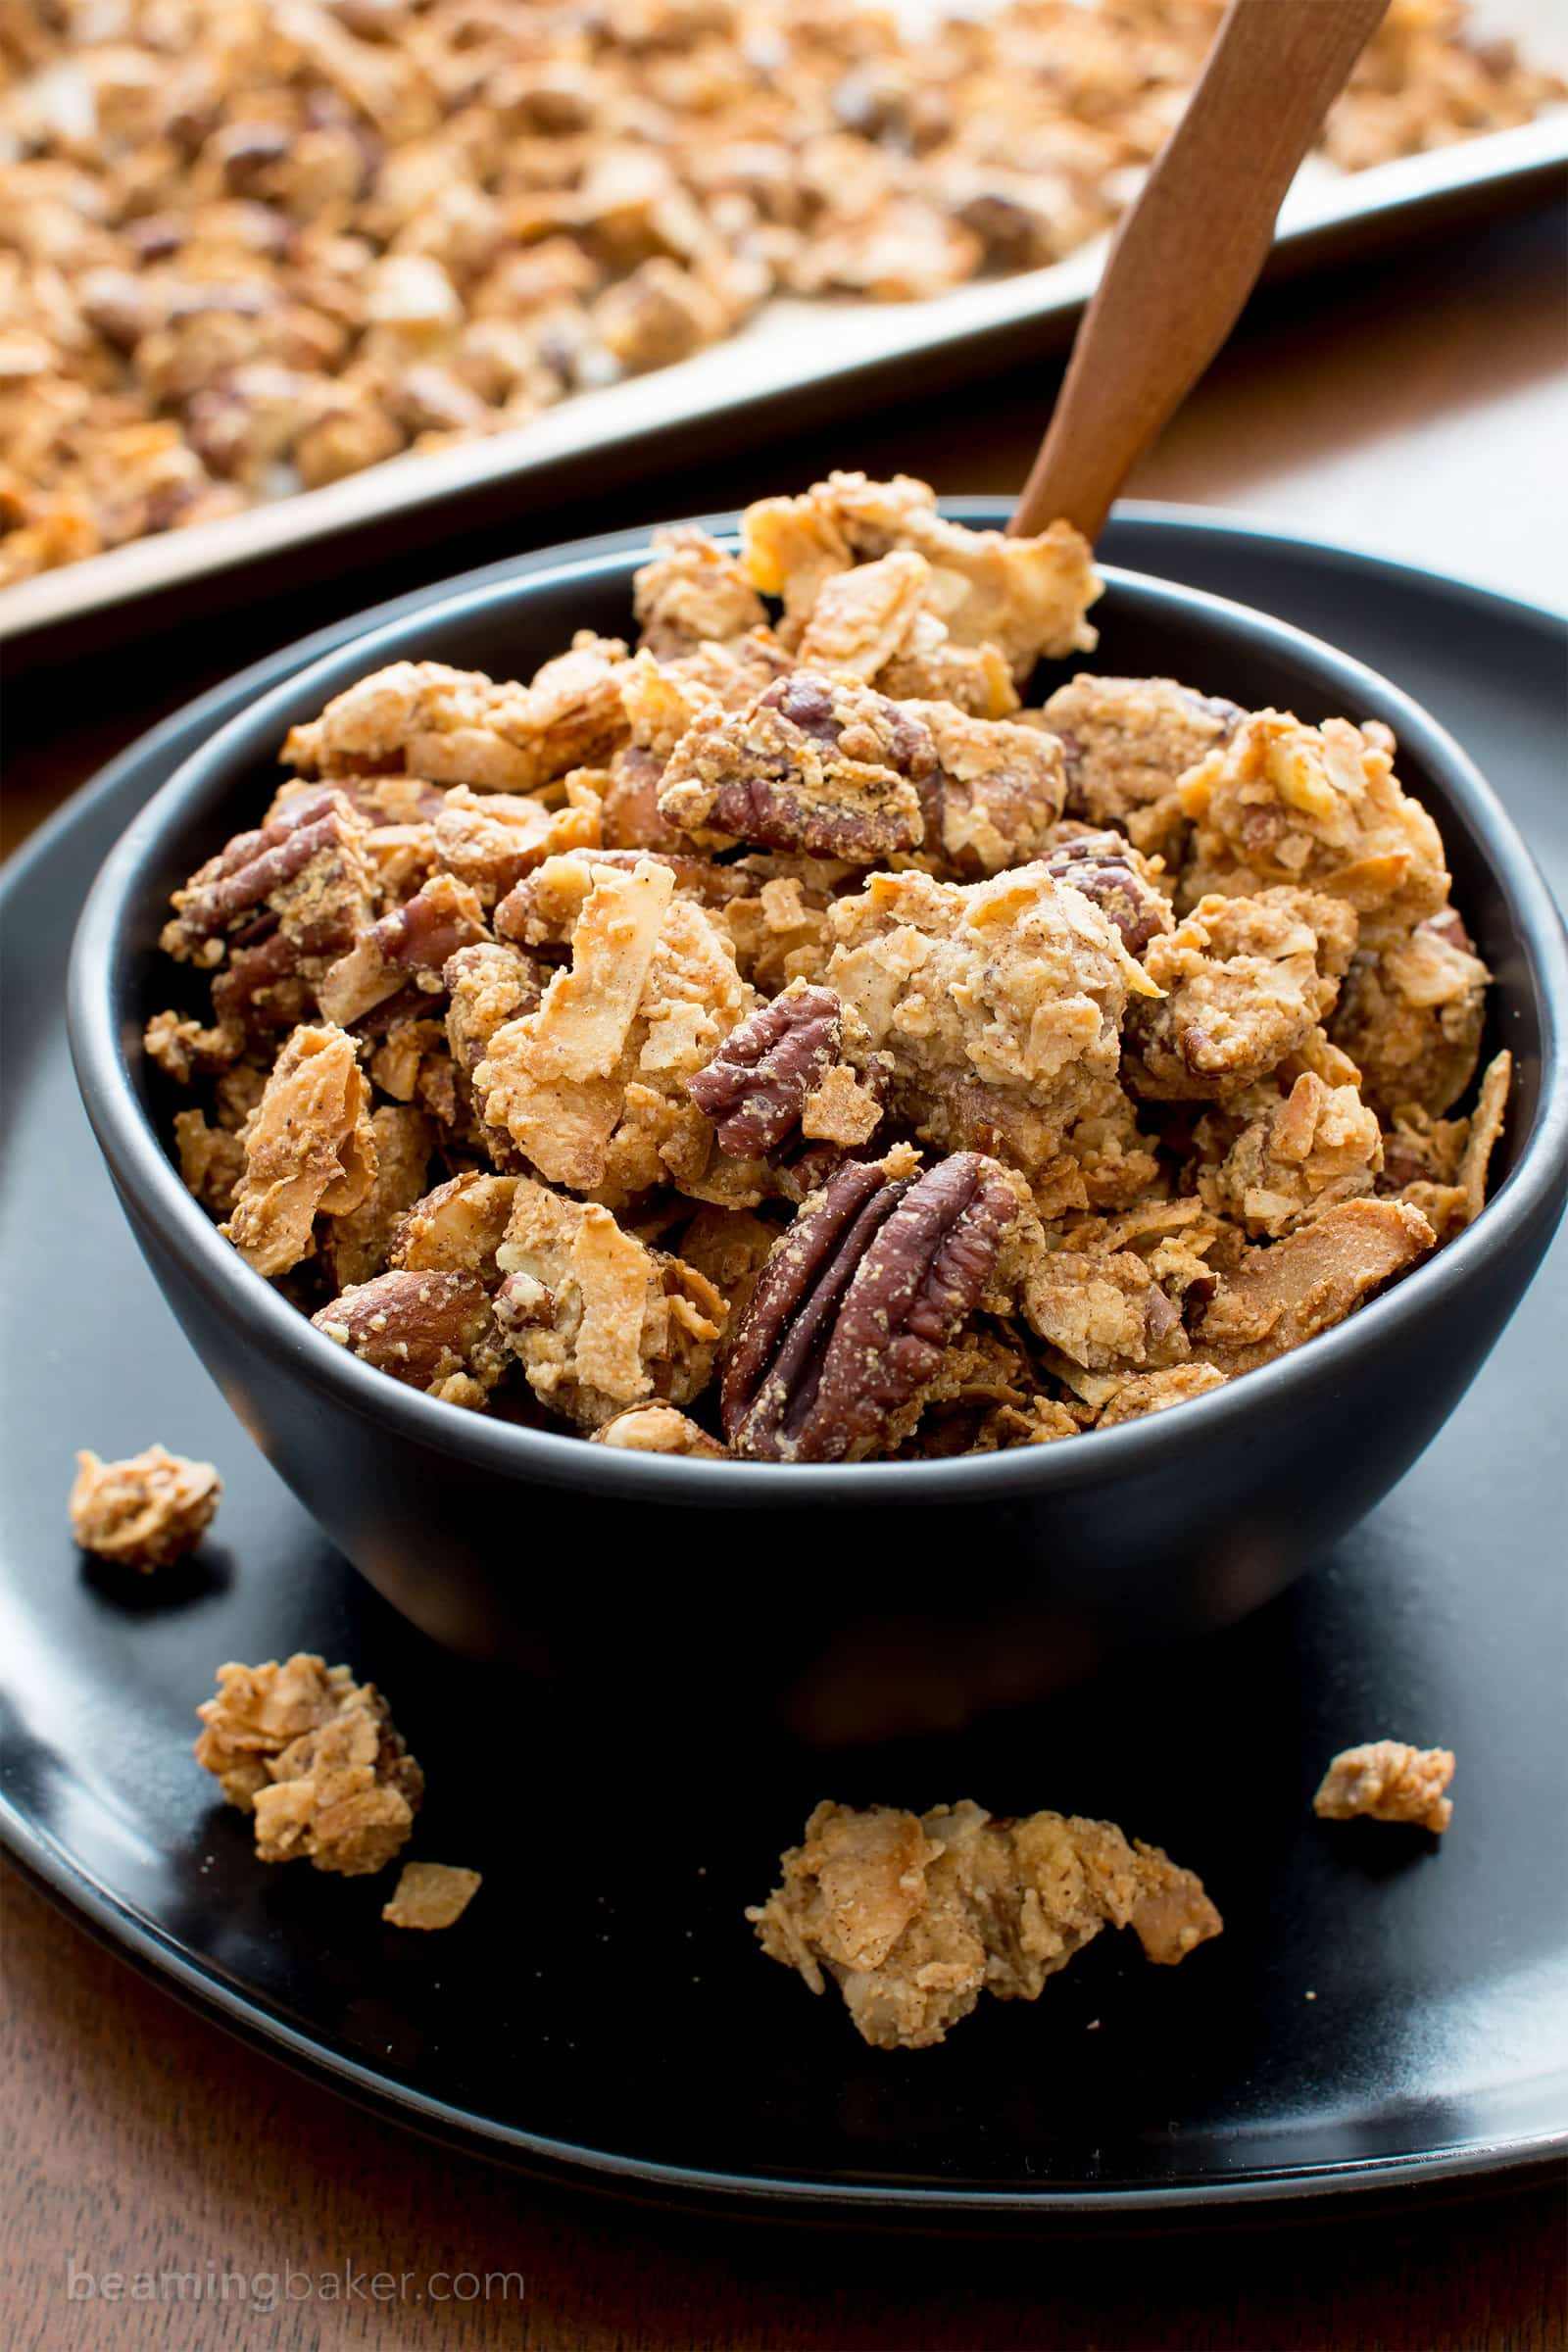 Homemade Chunky Paleo Granola with Clusters (V, GF): a warm, cozy recipe for grain-free homemade granola packed with crunchy nuts and satisfyingly sweet clusters. #Paleo #Vegan #GlutenFree #DairyFree #Granola #Snacks | Recipe on BeamingBaker.com